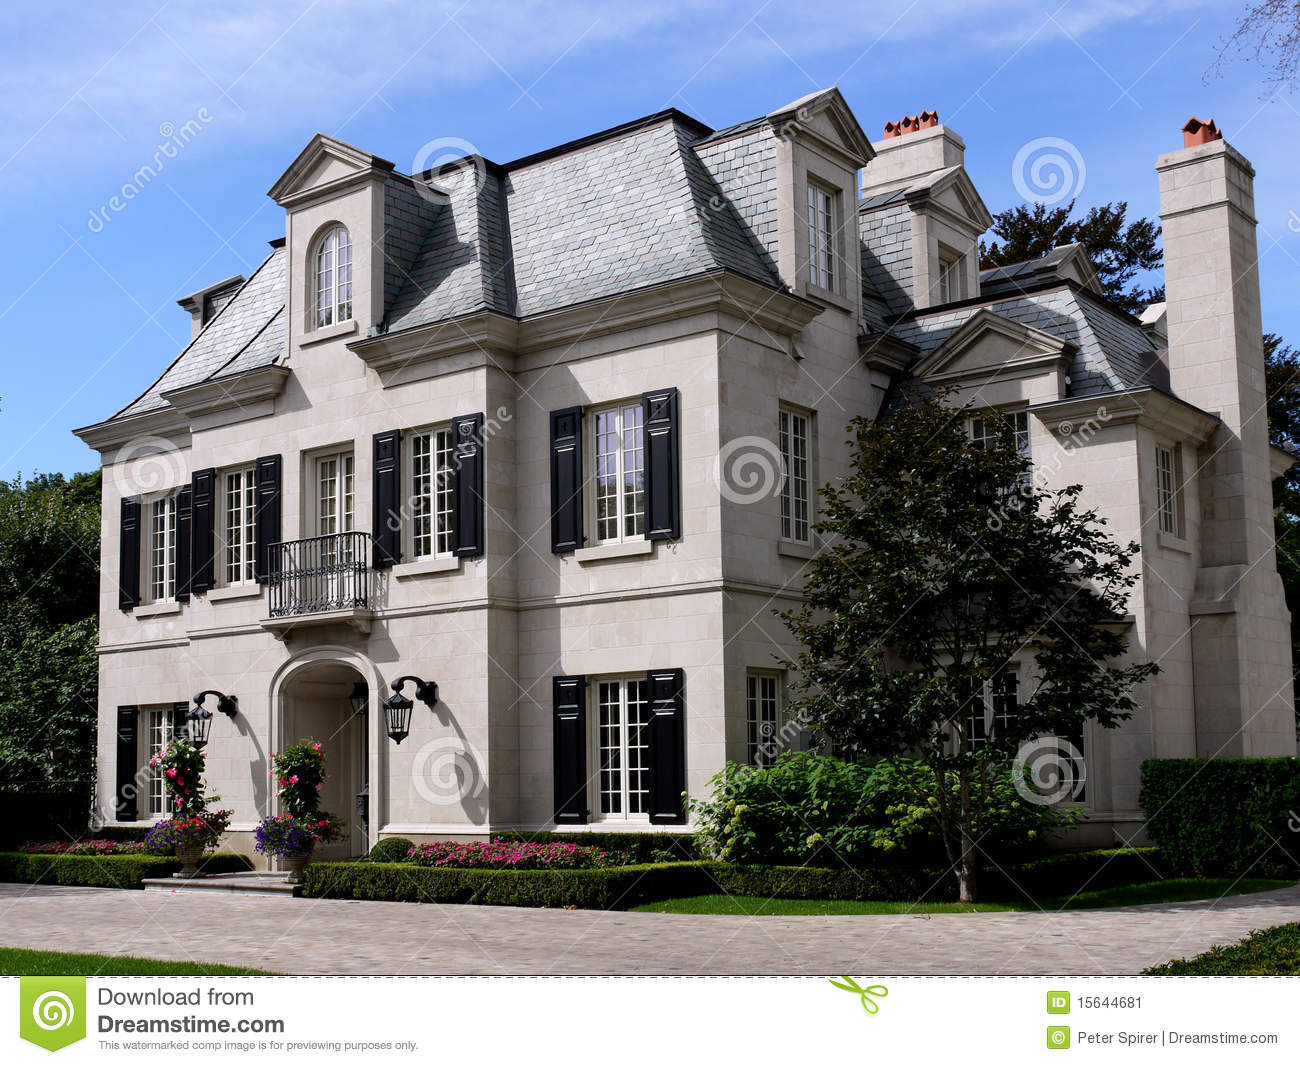 House Types furthermore Fassadengestaltung Einfamilienhaus further English Tea House Restaurant In together with Stock Images Red Brick English Village House Garden Image17476544 further Exterior Colors For French Home Design. on colonial house landscaping